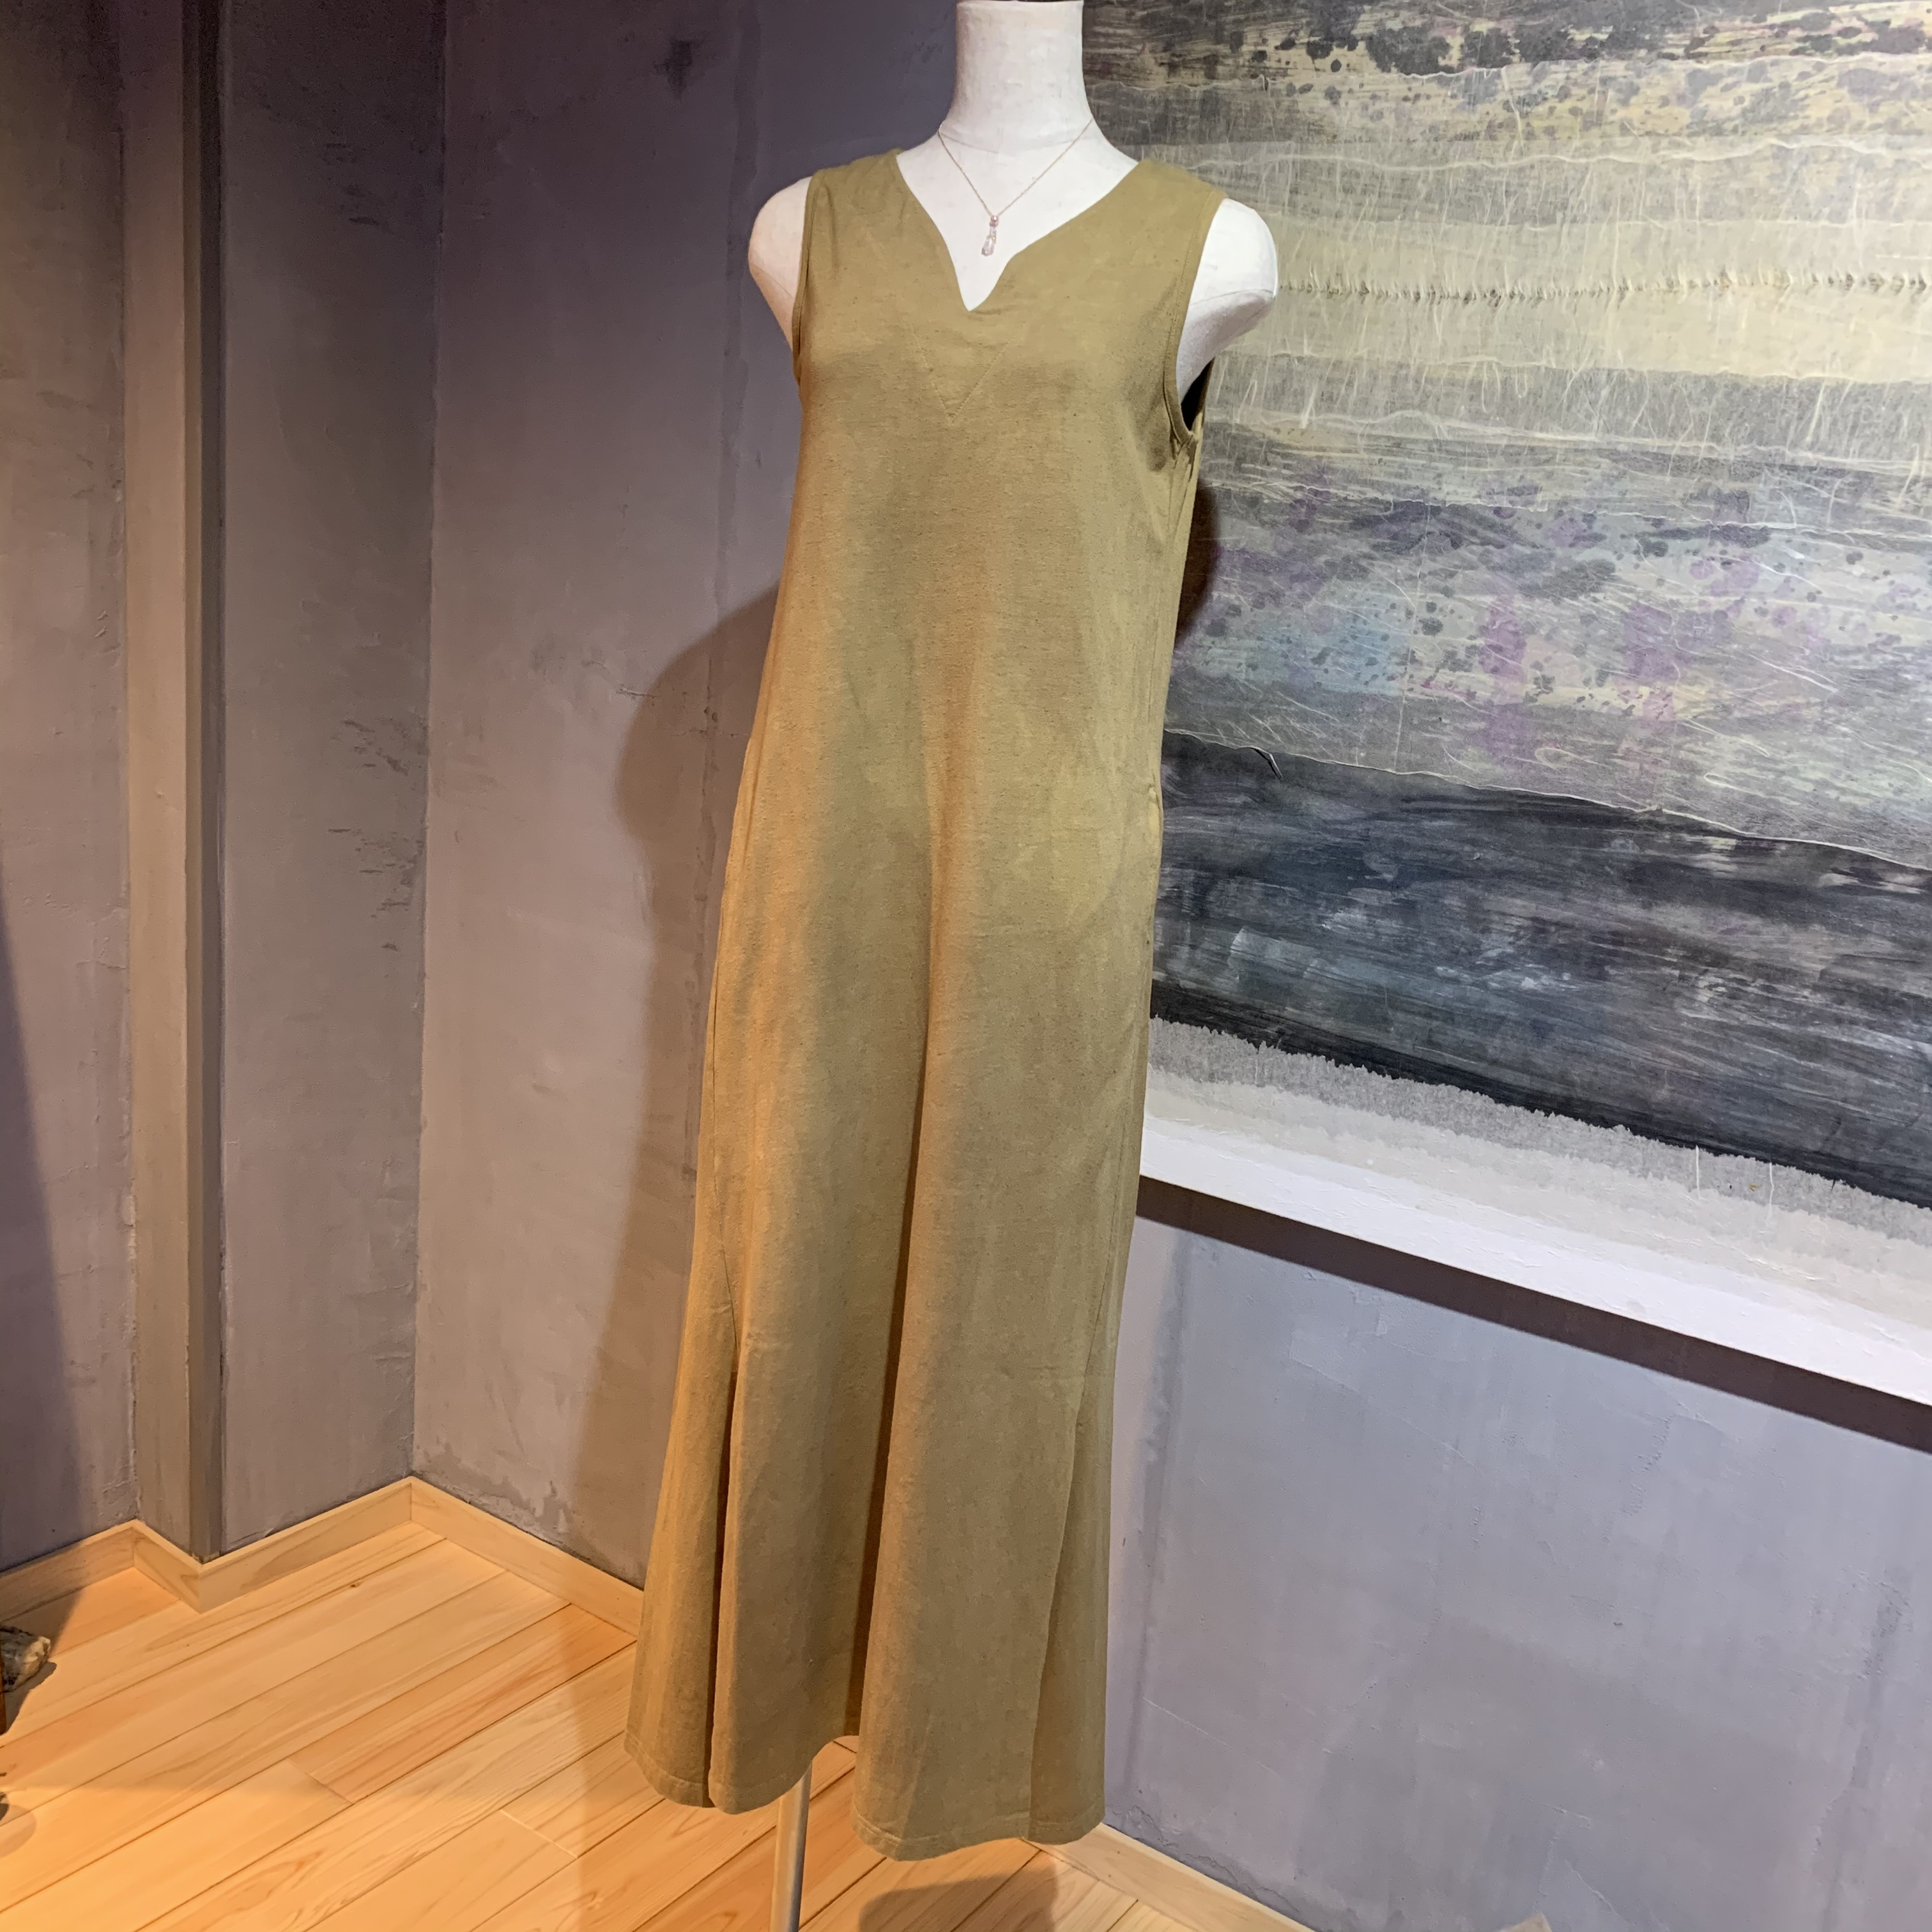 【予約販売受中】∞One Piece Dress∞ Bamboo/Spandex Jersey